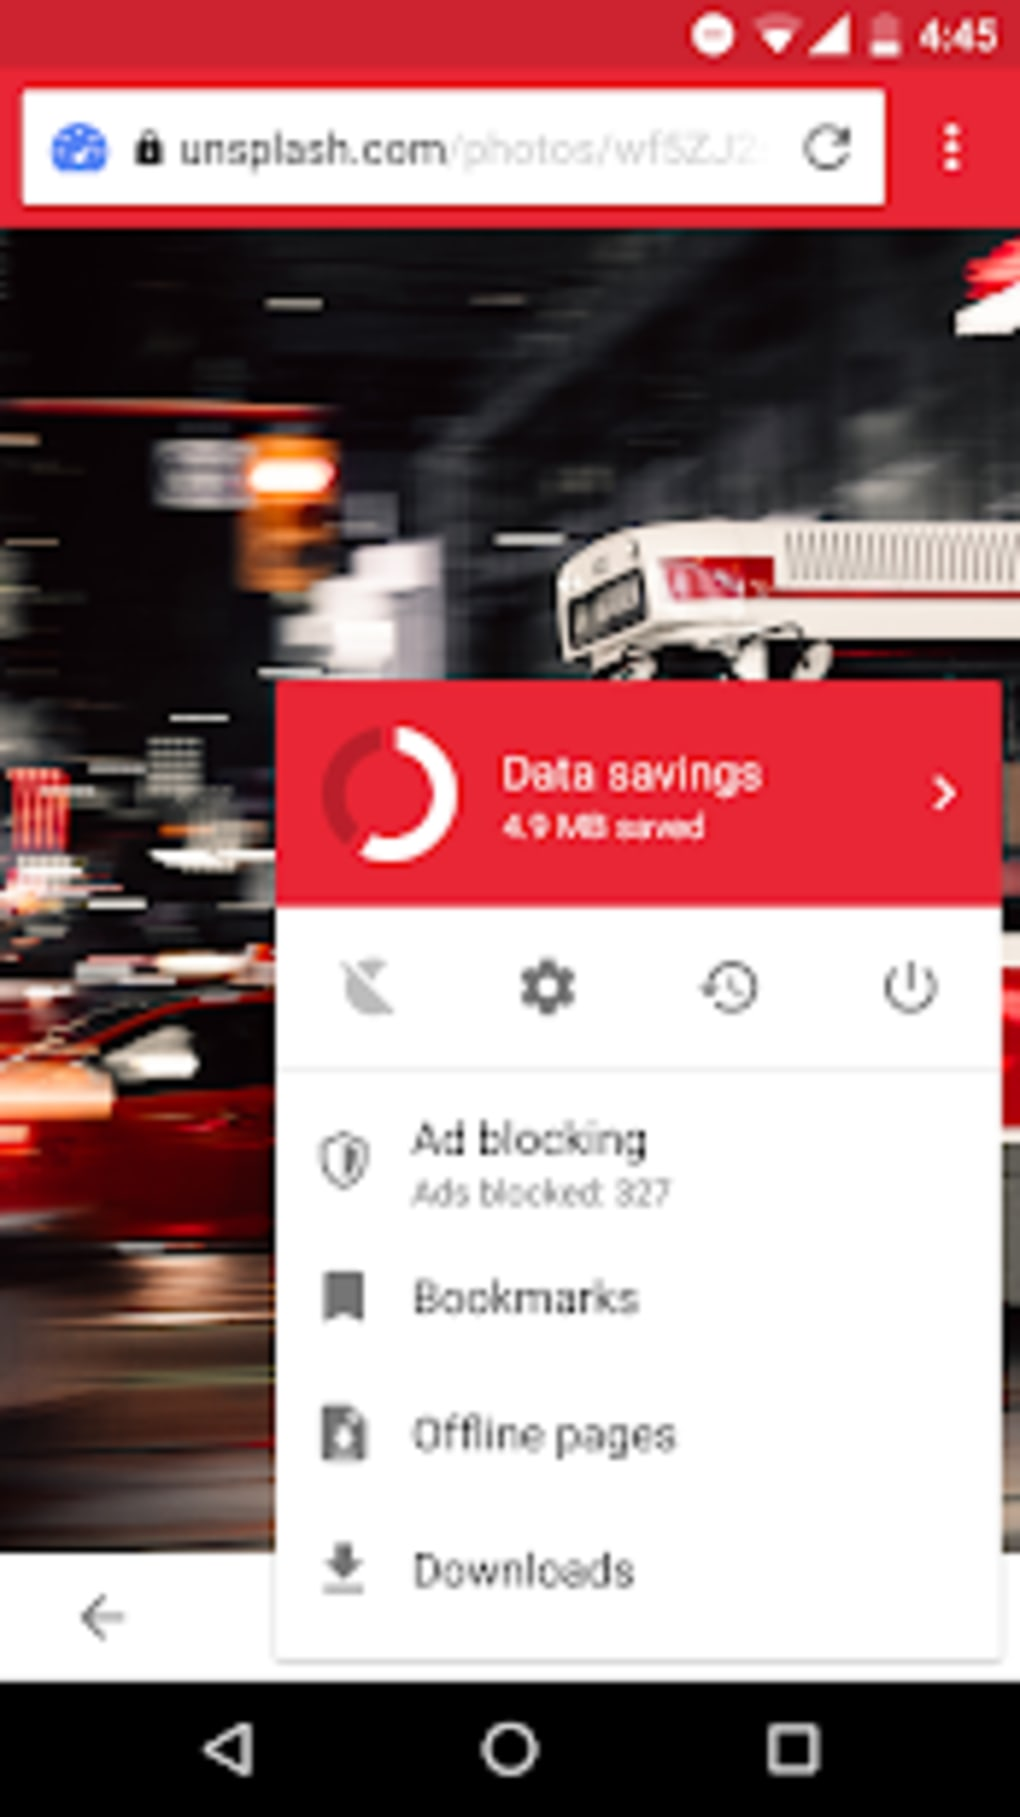 Opera Mini for Android - Download